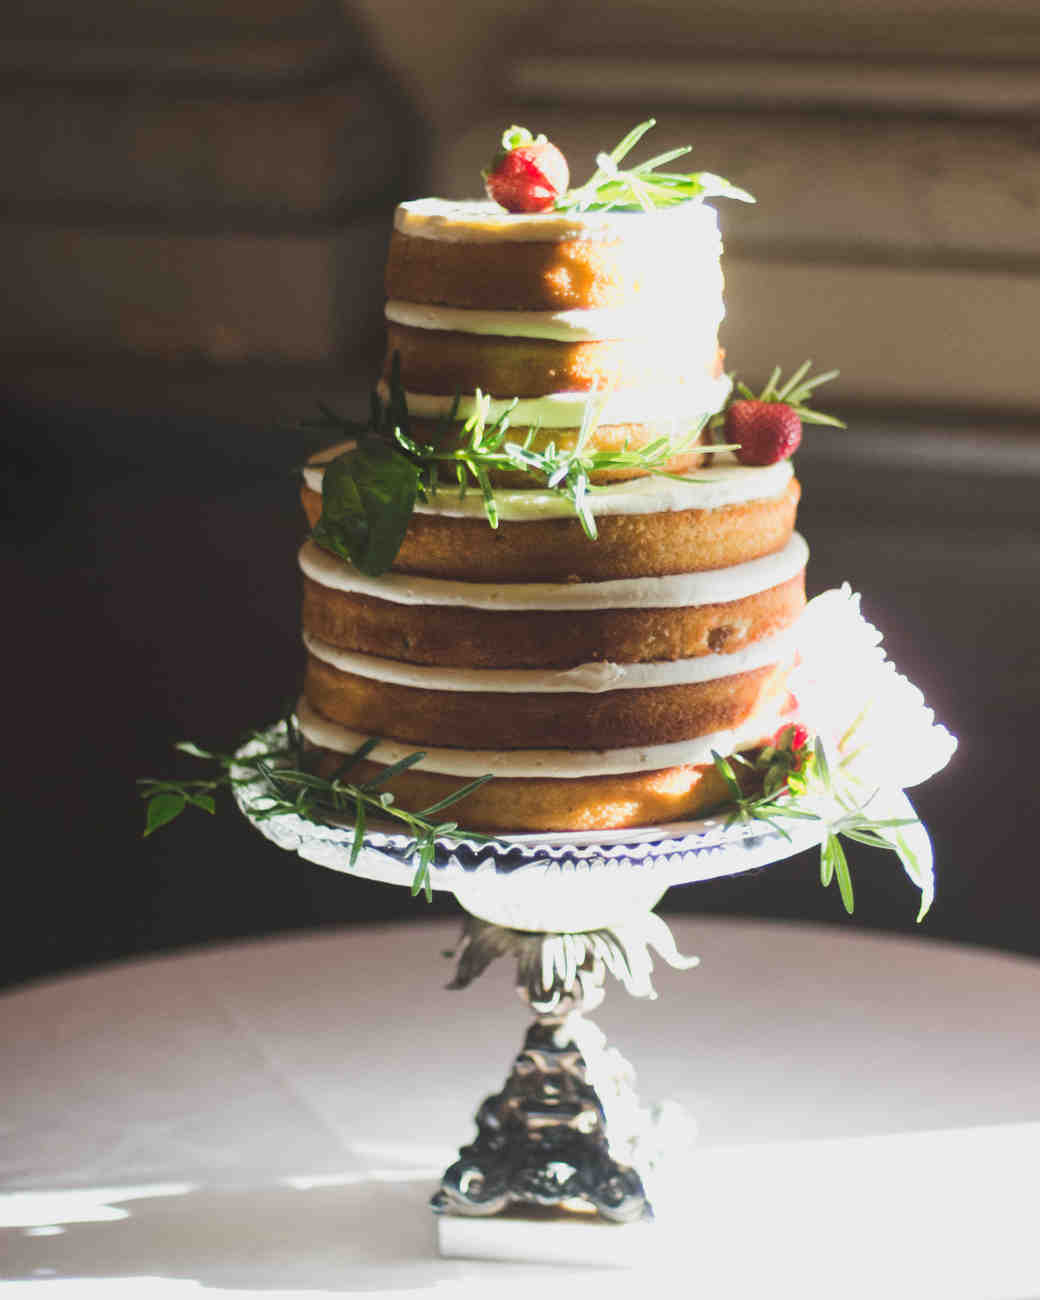 Lemon-Basil Wedding Cake with Strawberries